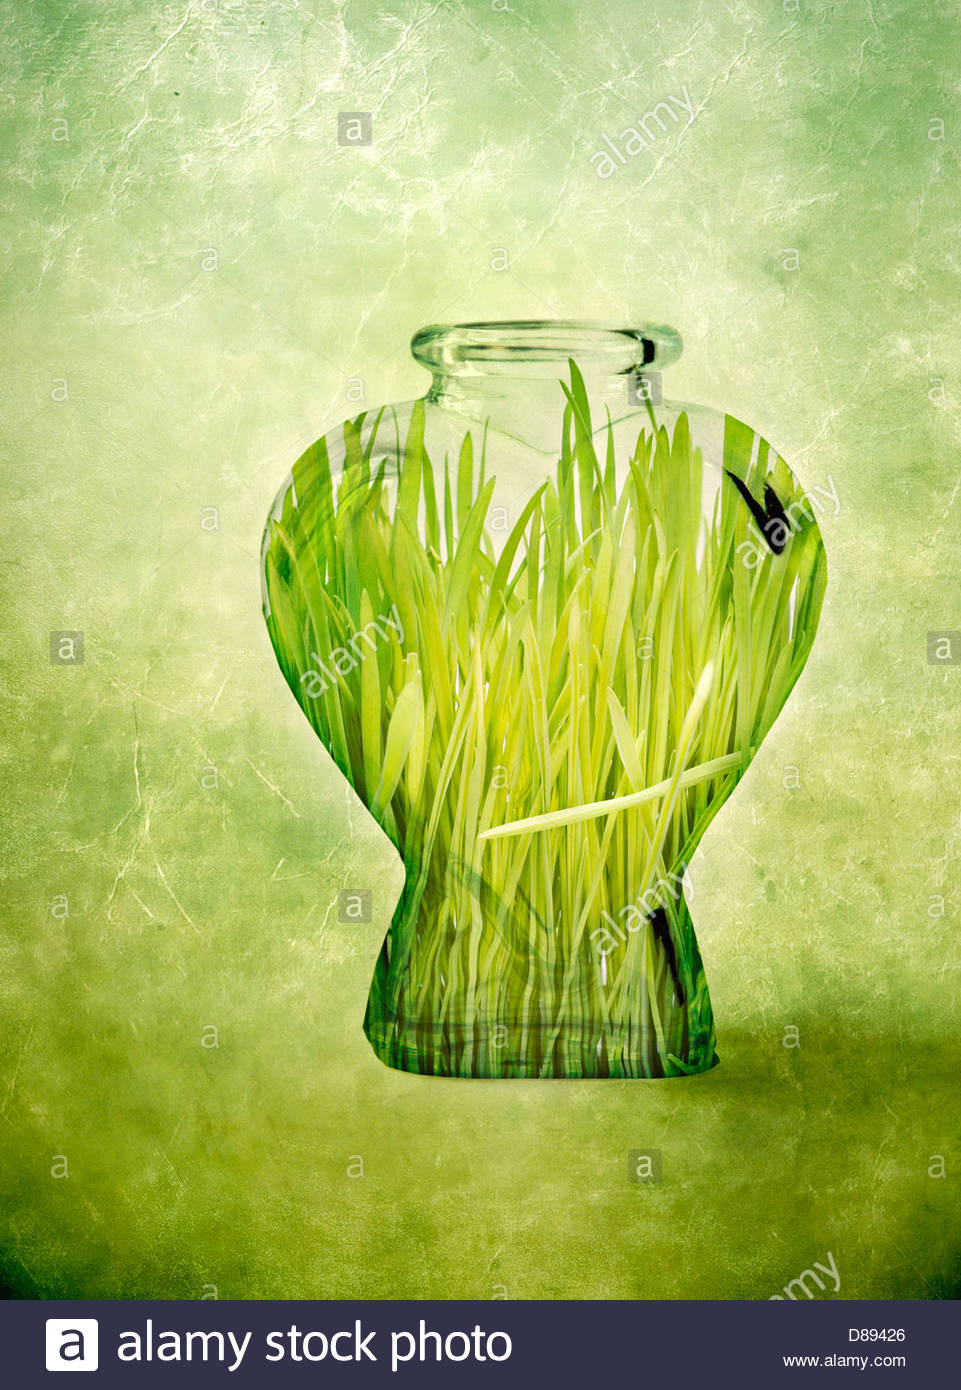 Digital manipulation of green grass inside a glass bottle - Stock Image